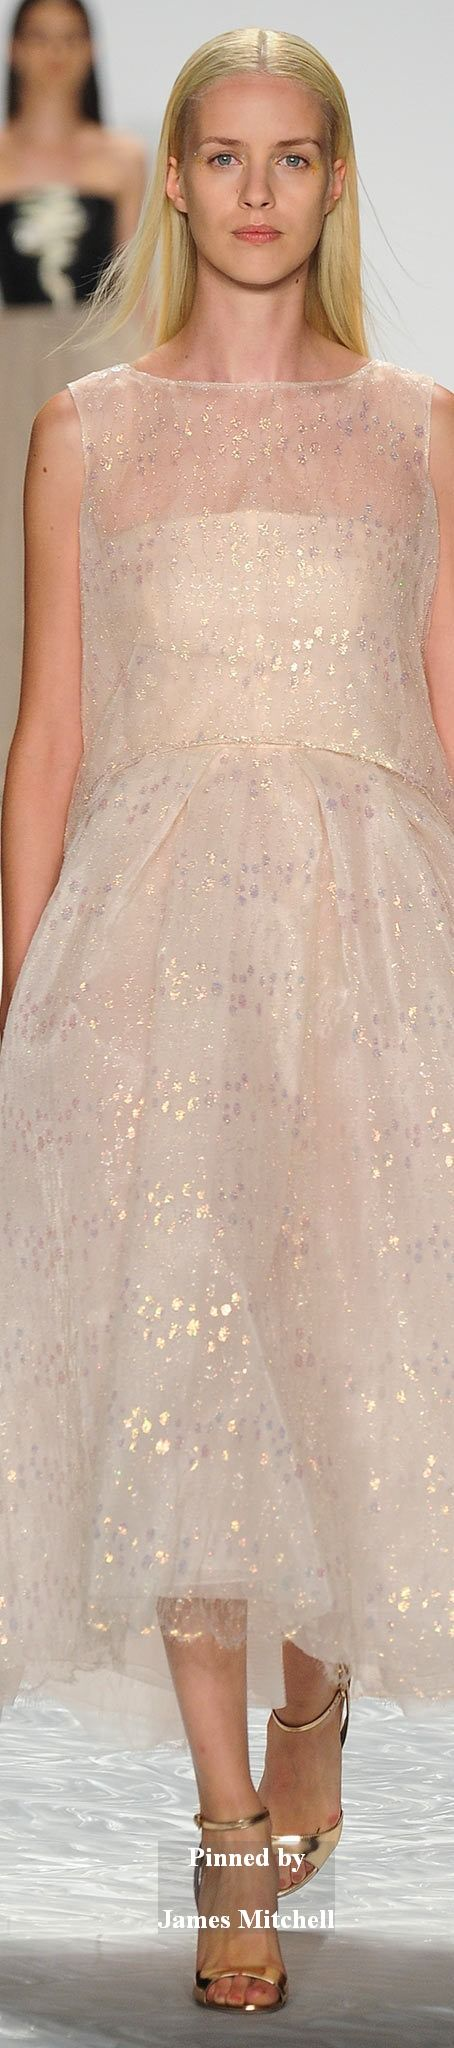 Monique Lhuillier Collection Spring 2015 Ready-to-Wear